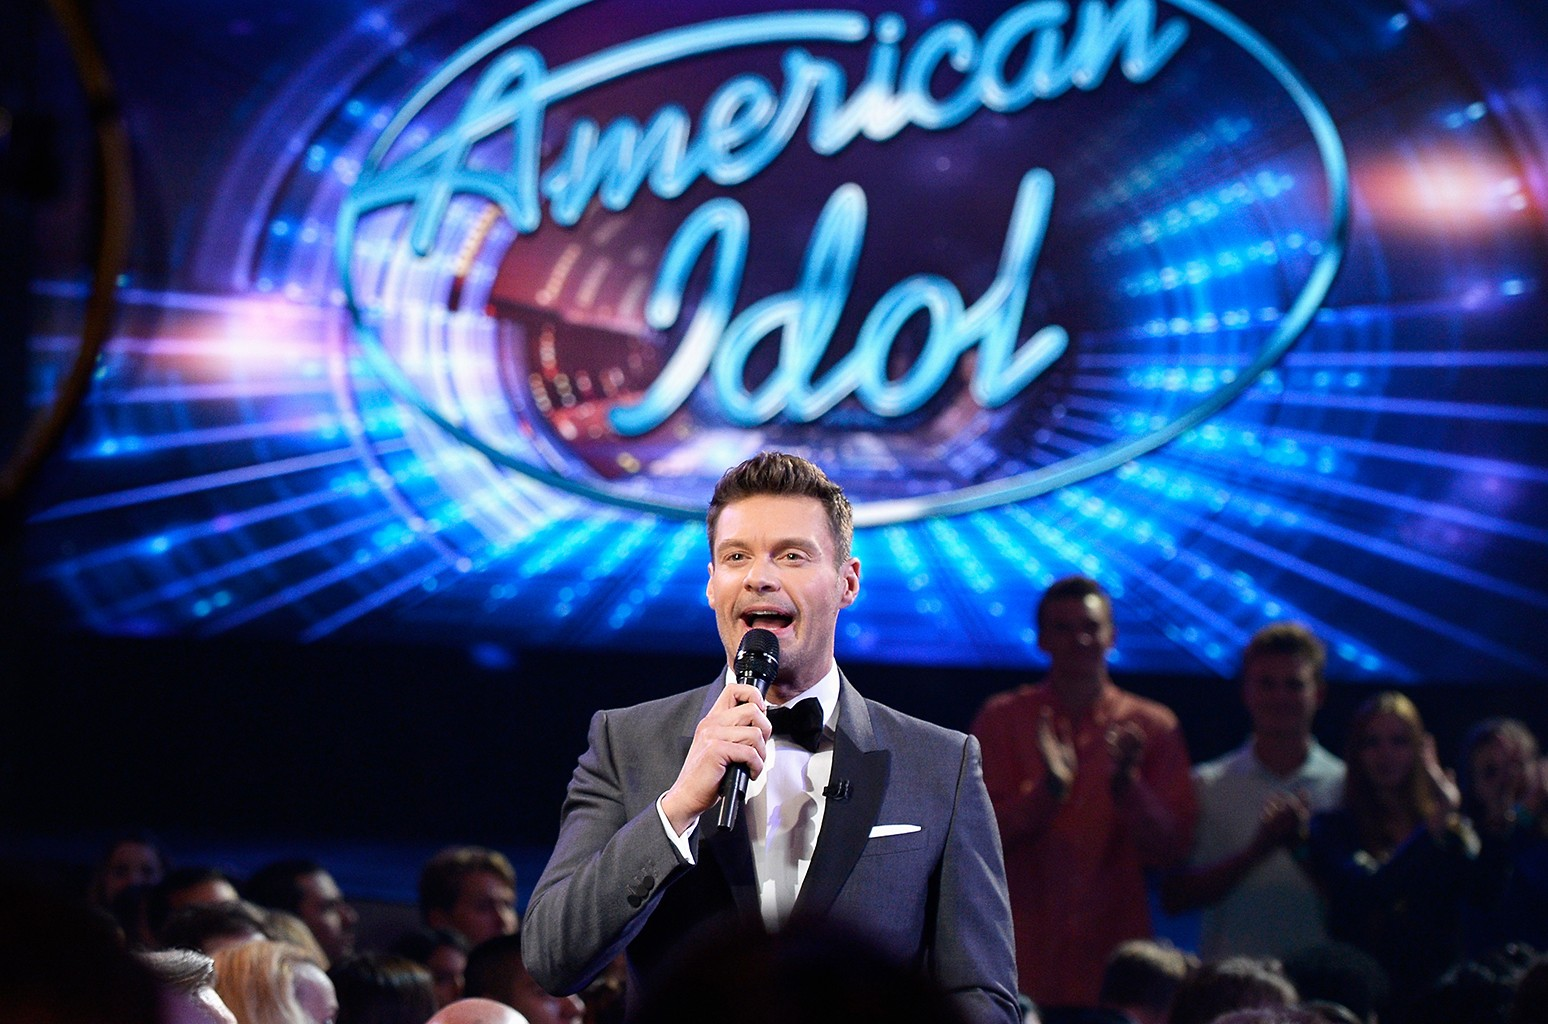 Ryan Seacrest speaks in the audience during Fox's American Idol Finale For The Farewell Season at Dolby Theatre on April 7, 2016 in Hollywood, Calif.